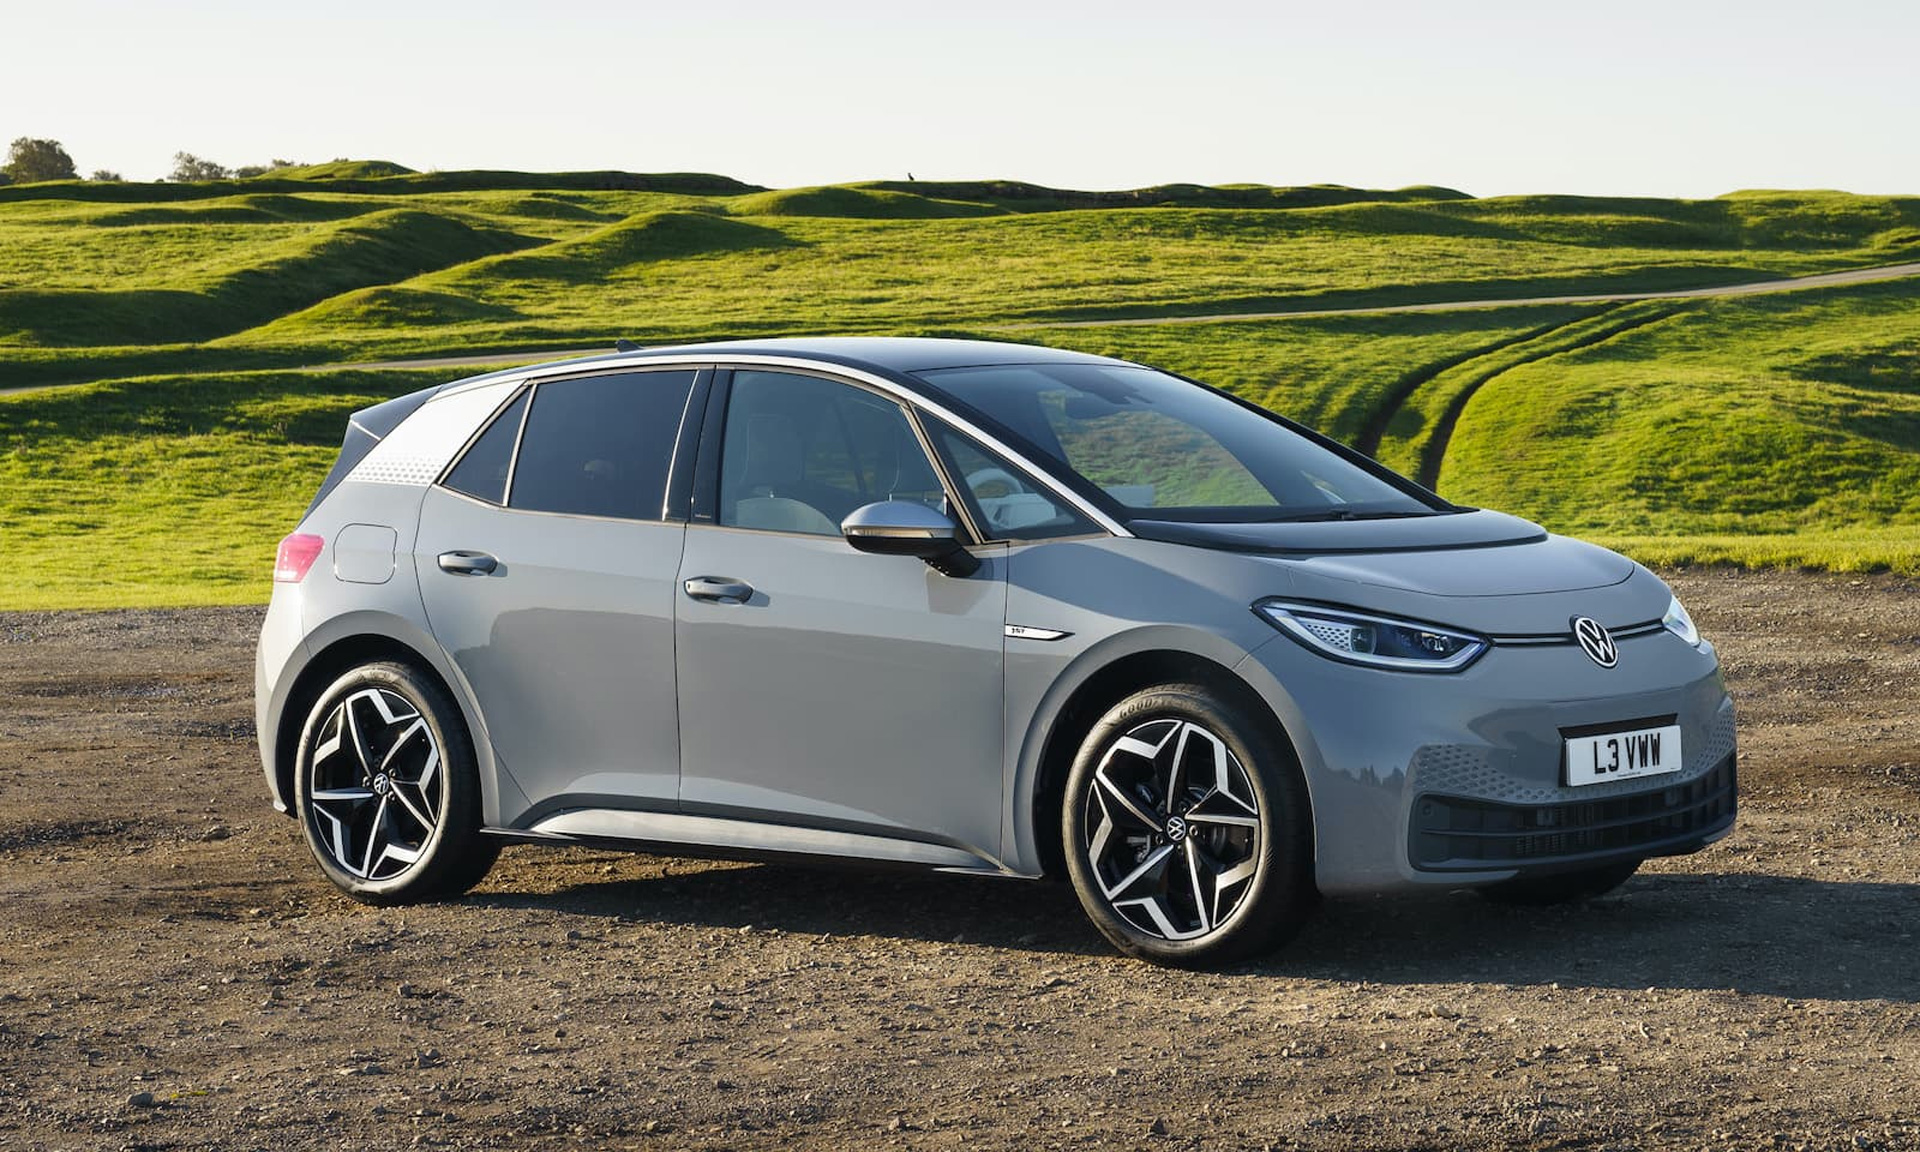 Key hybrid and electric cars for 2021 tested by Which? - has the time to go electric arrived? – Which? News